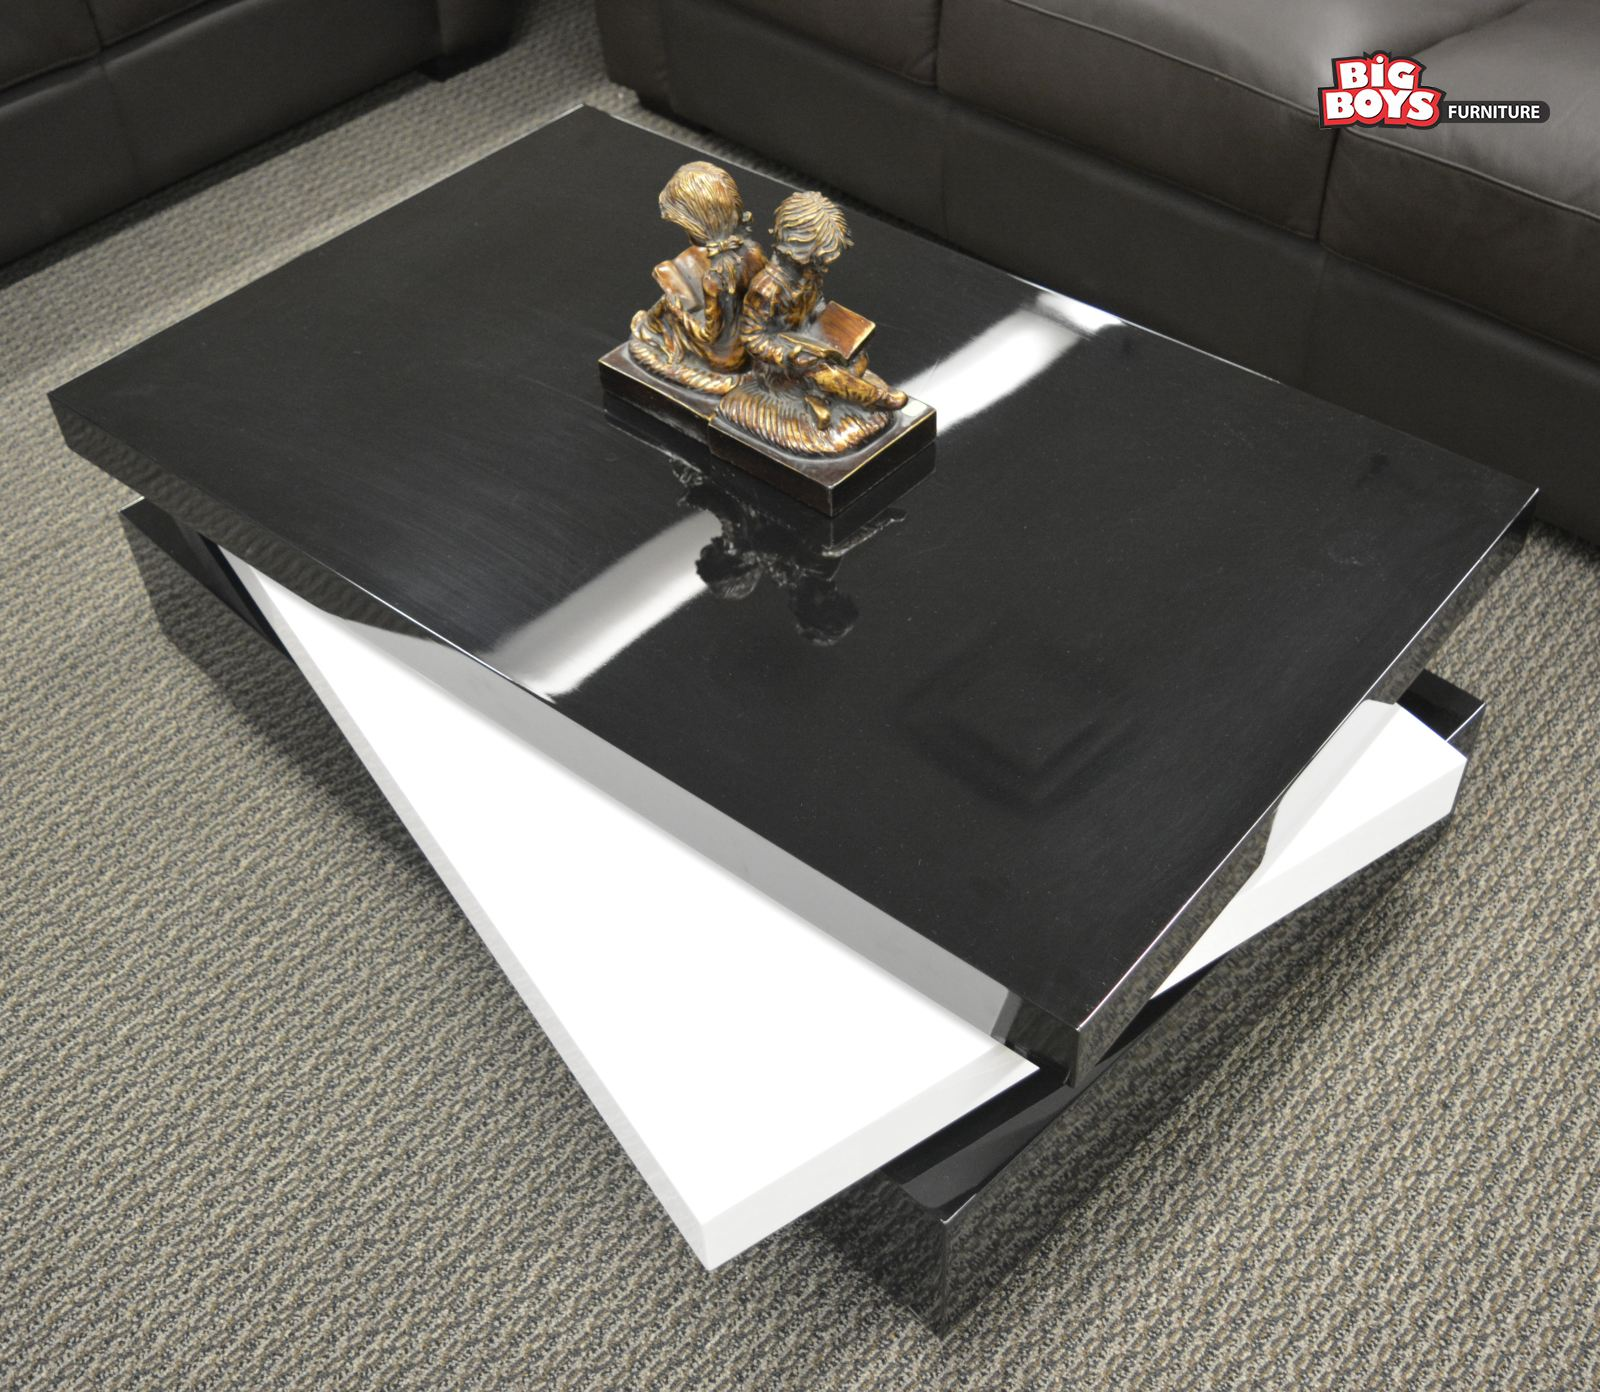 Latest designs of Coffee tables at discounted price